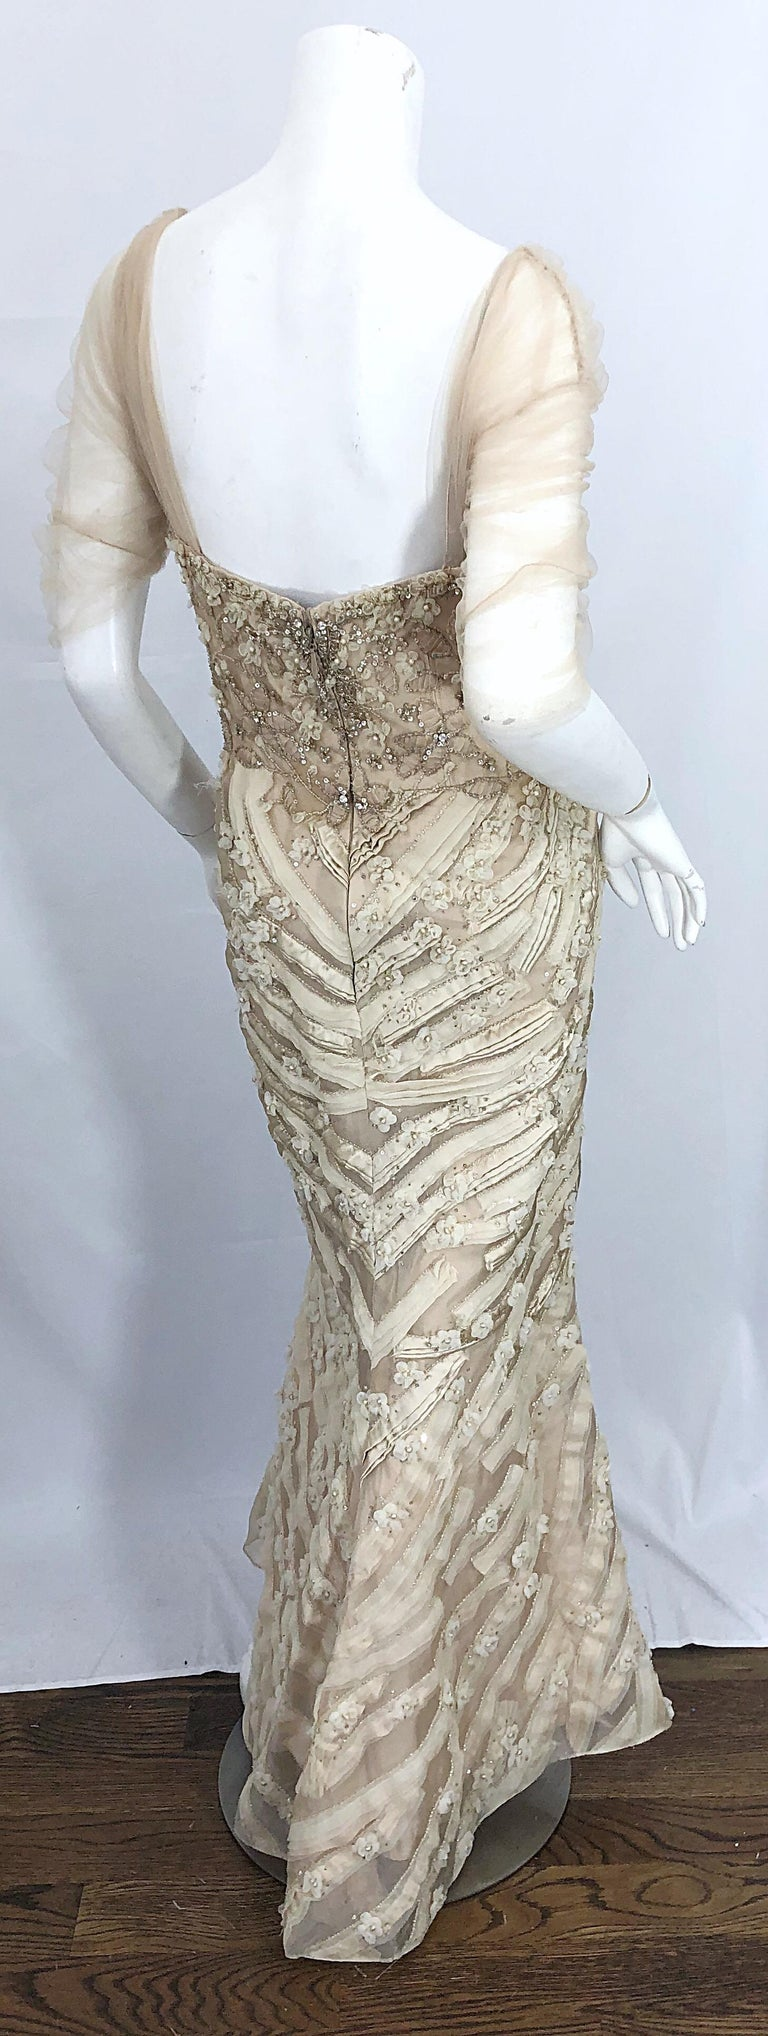 Monique Lhuillier Couture Size 10 / 12 Beige Rhinestone Beaded $12,000 Silk Gown For Sale 12